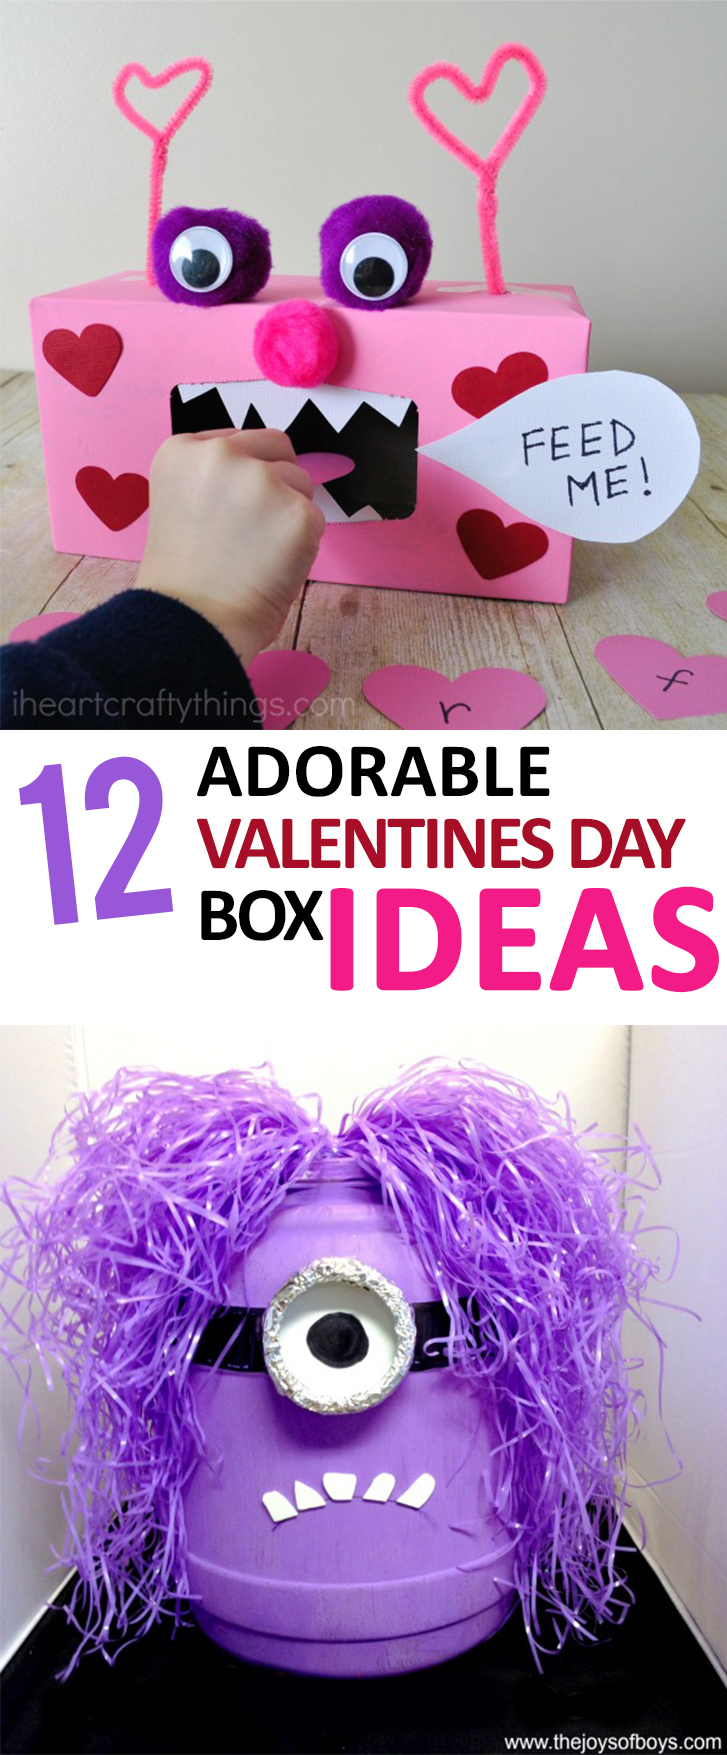 10 Trendy Out Of The Box Valentines Day Ideas 12 adorable valentines day box ideas 2021